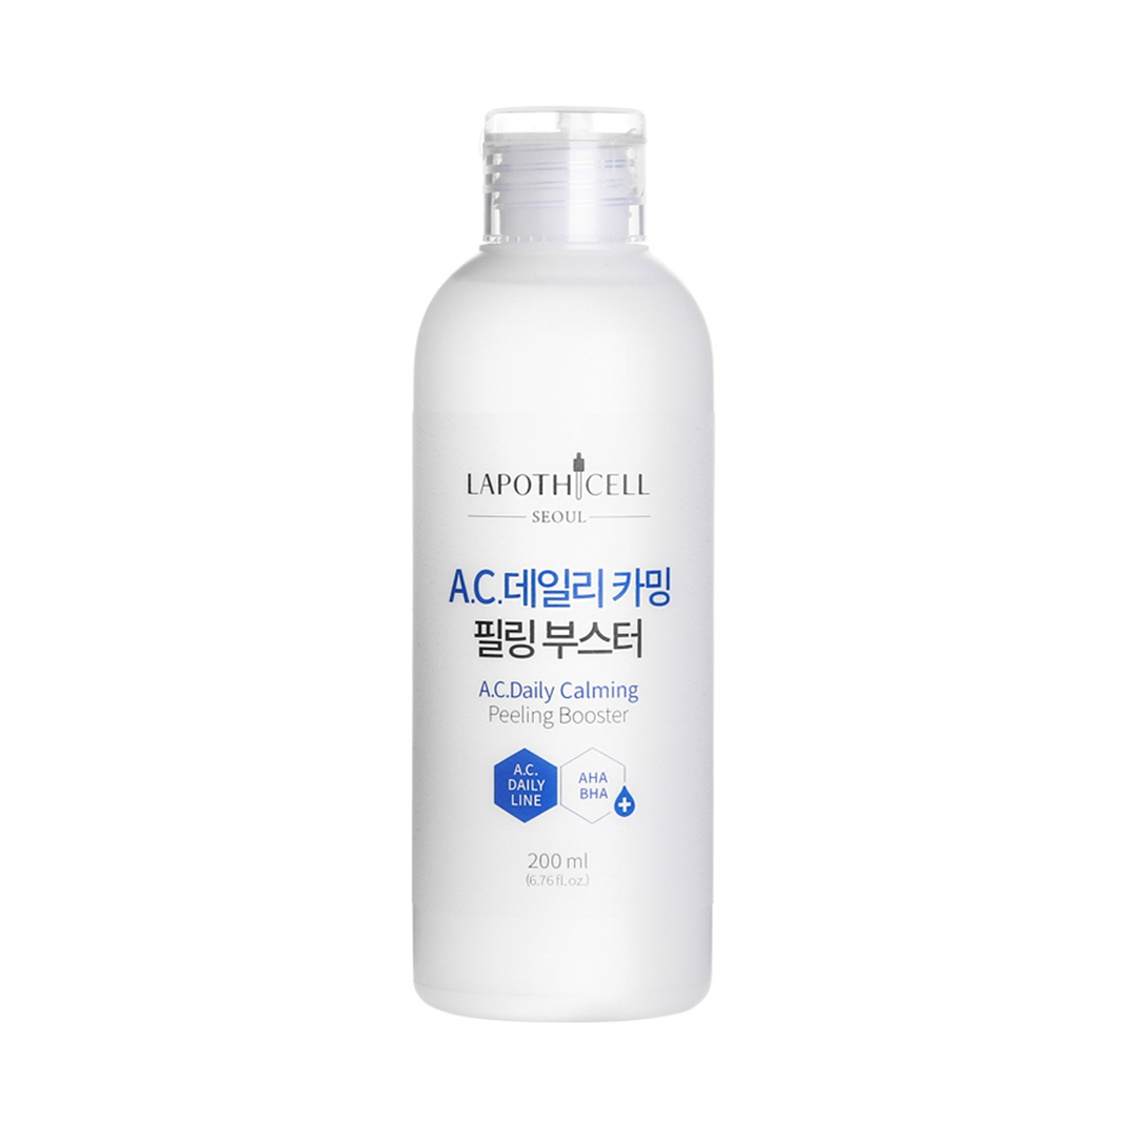 AC Daily Calming Peeling Booster 200ml